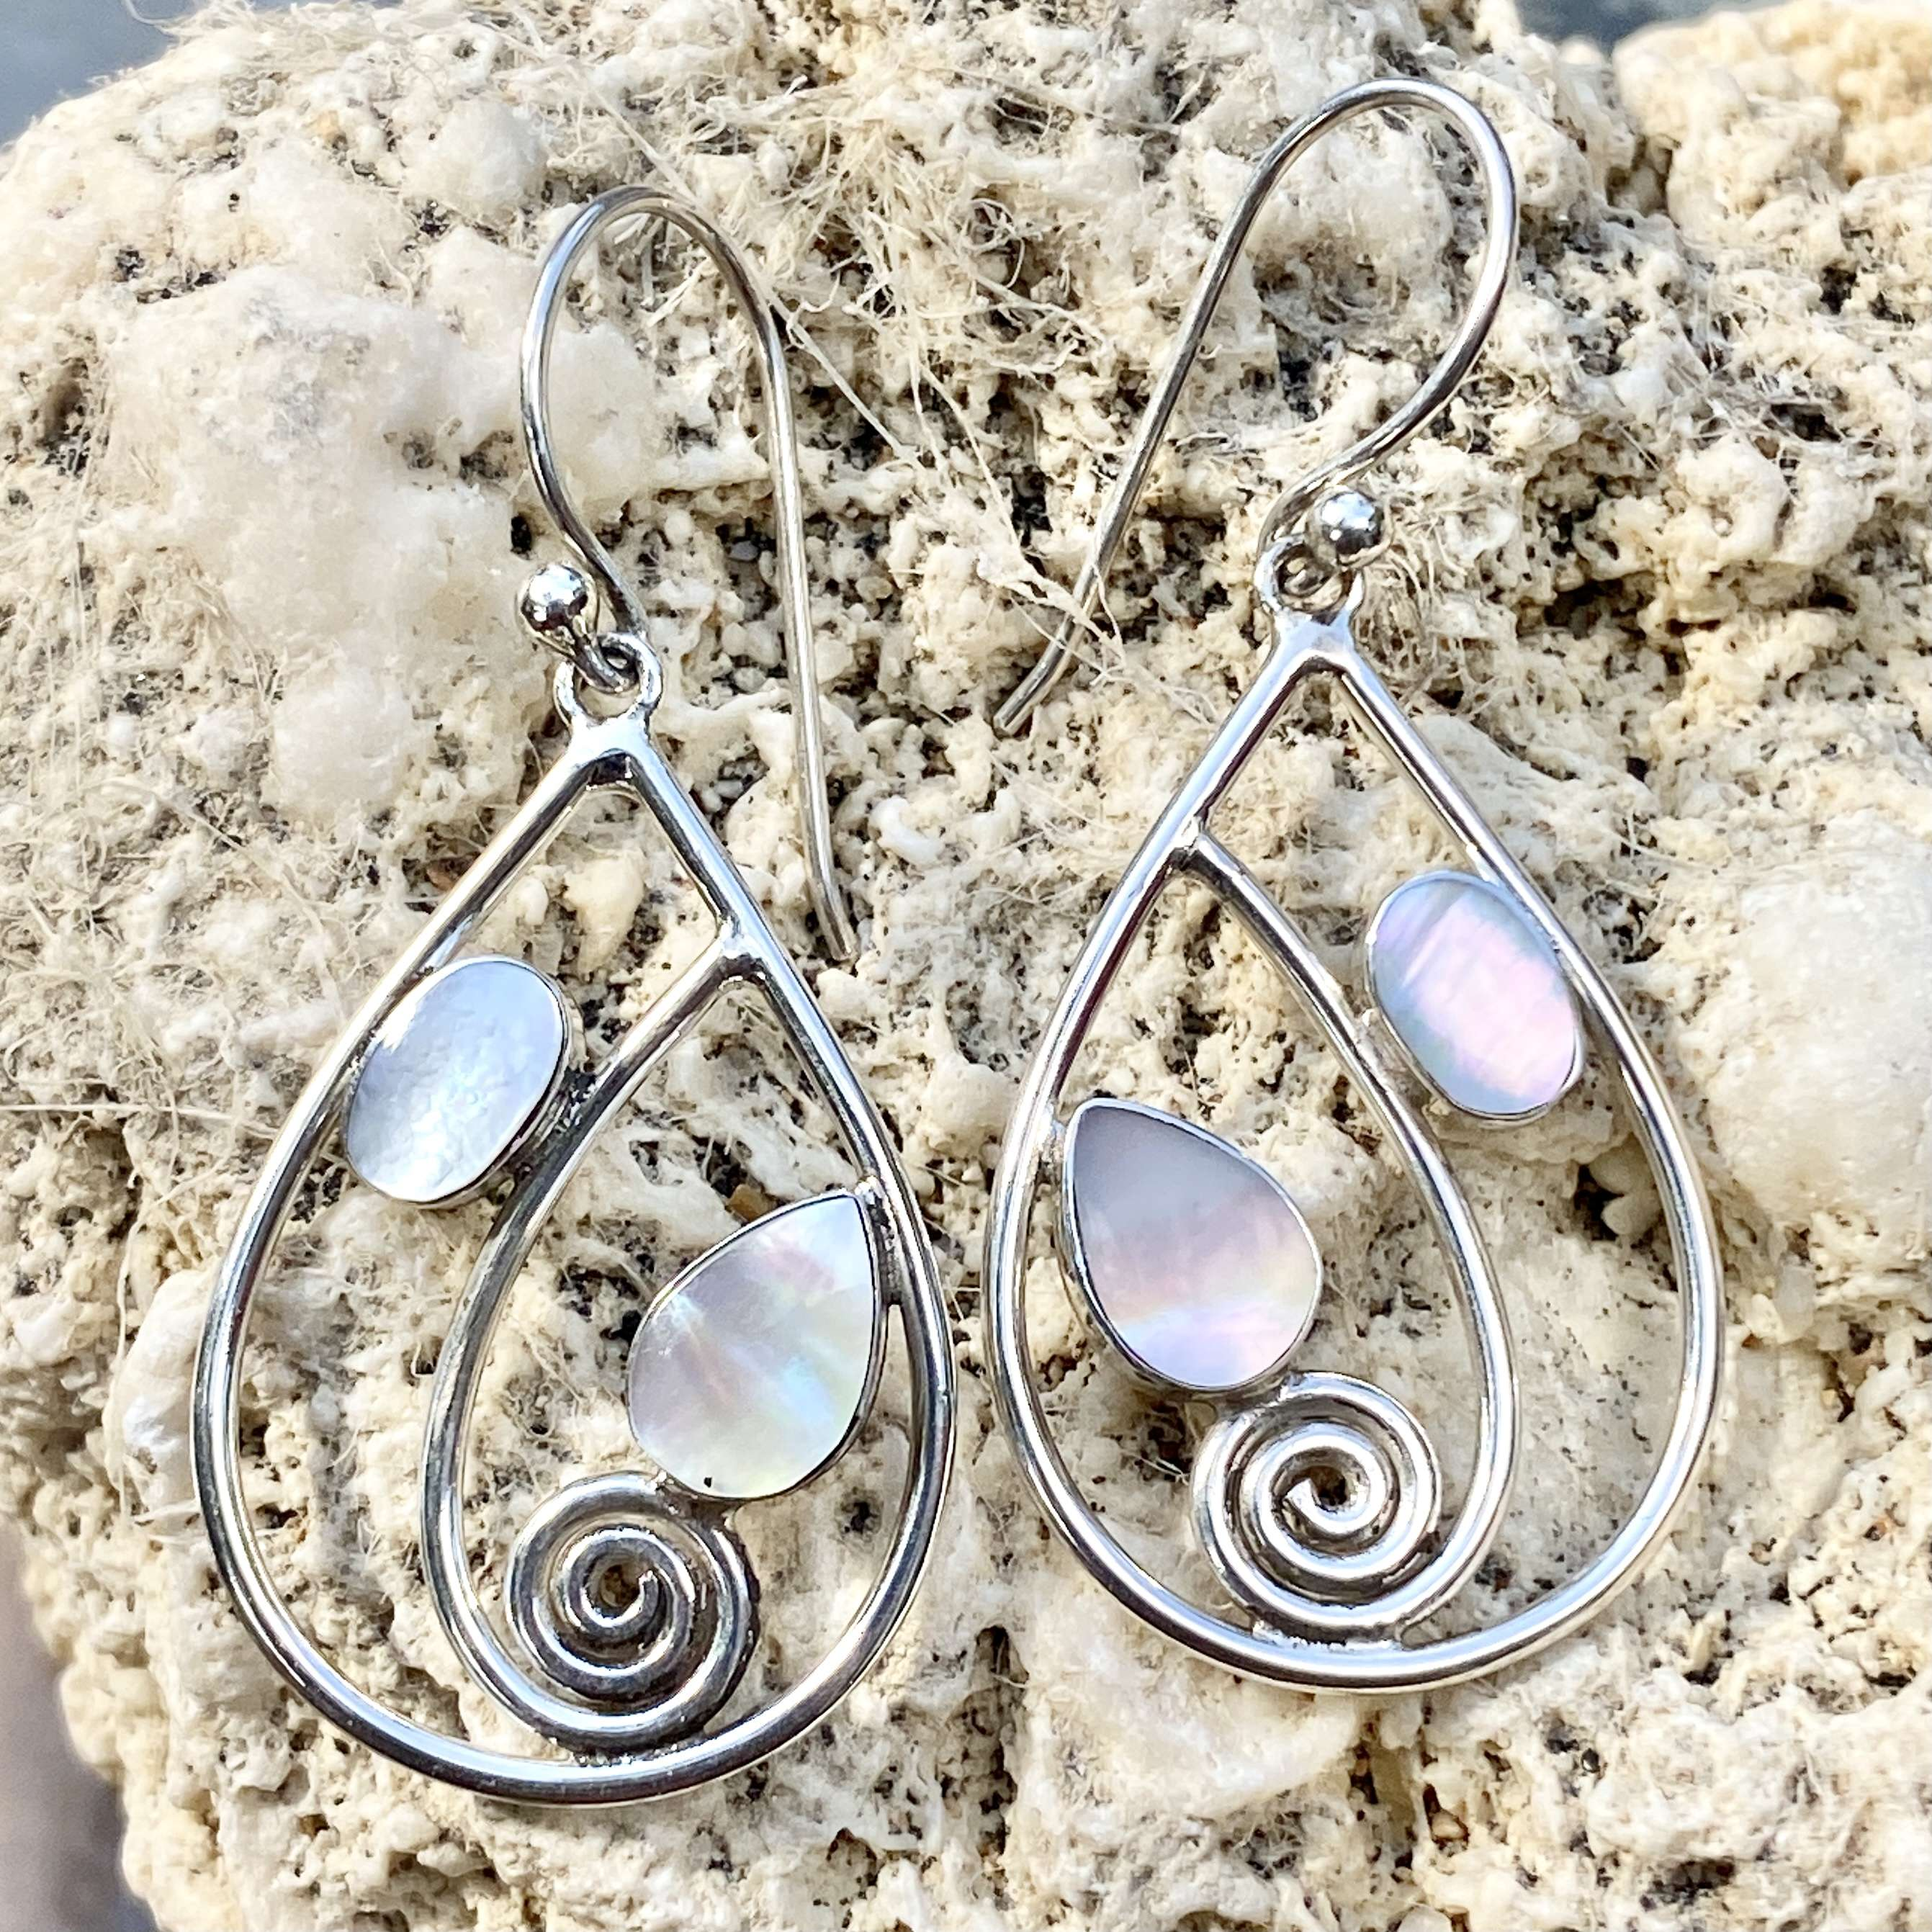 (Handmade 925 Bali Sterling Silver Earrings with MOTHER OF PEARL)